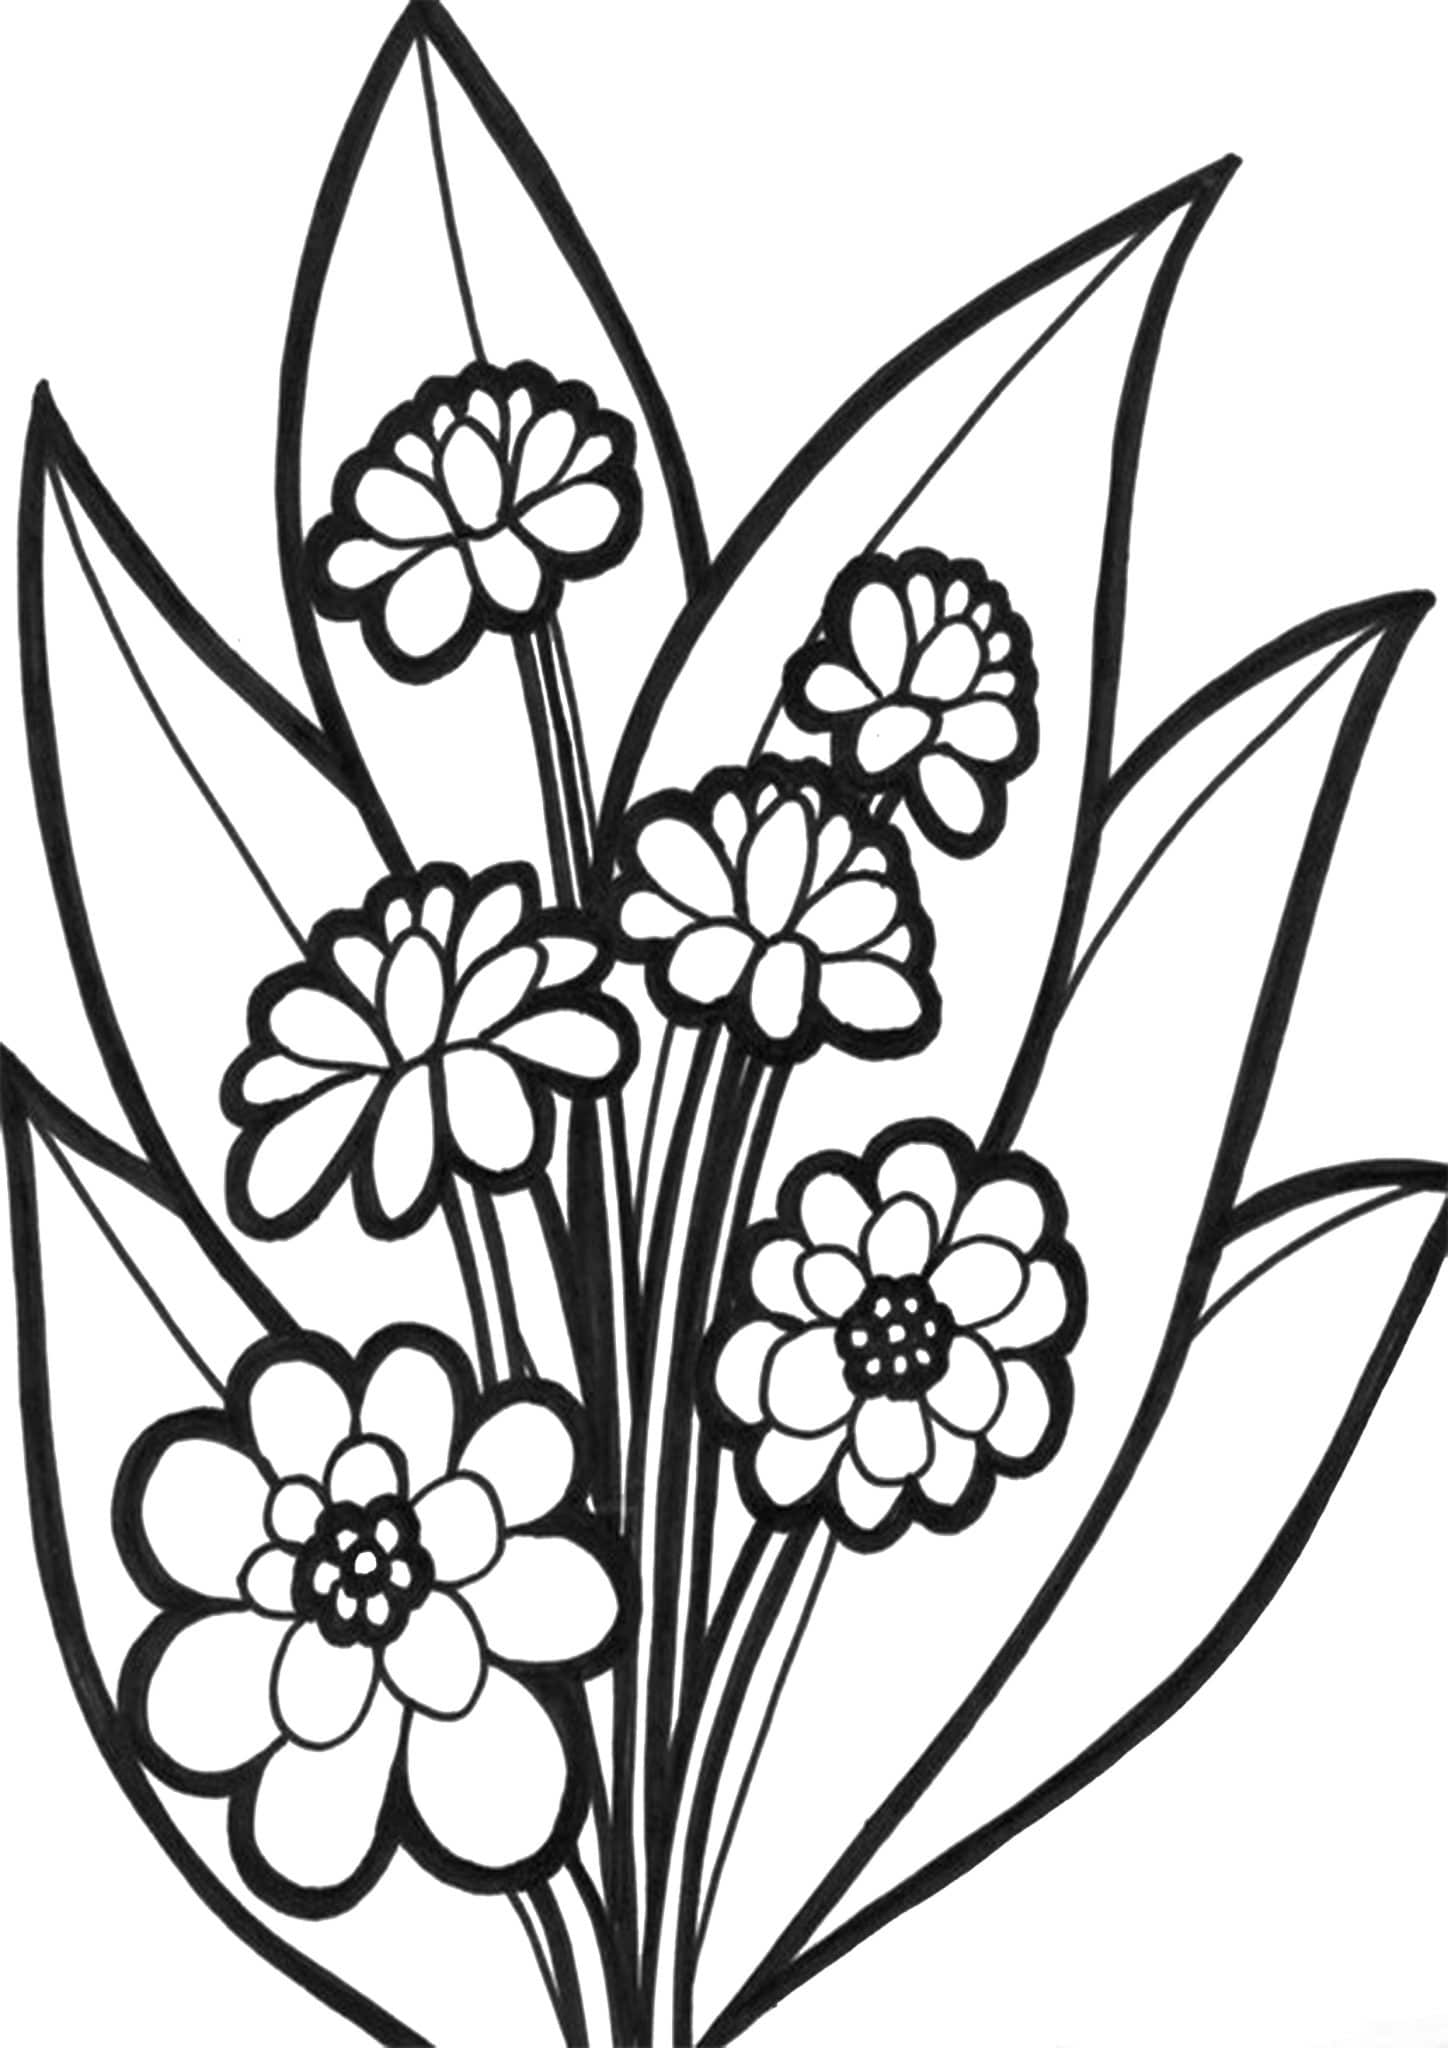 coloring sheets of flowers free printable flower coloring pages for kids cool2bkids of sheets flowers coloring